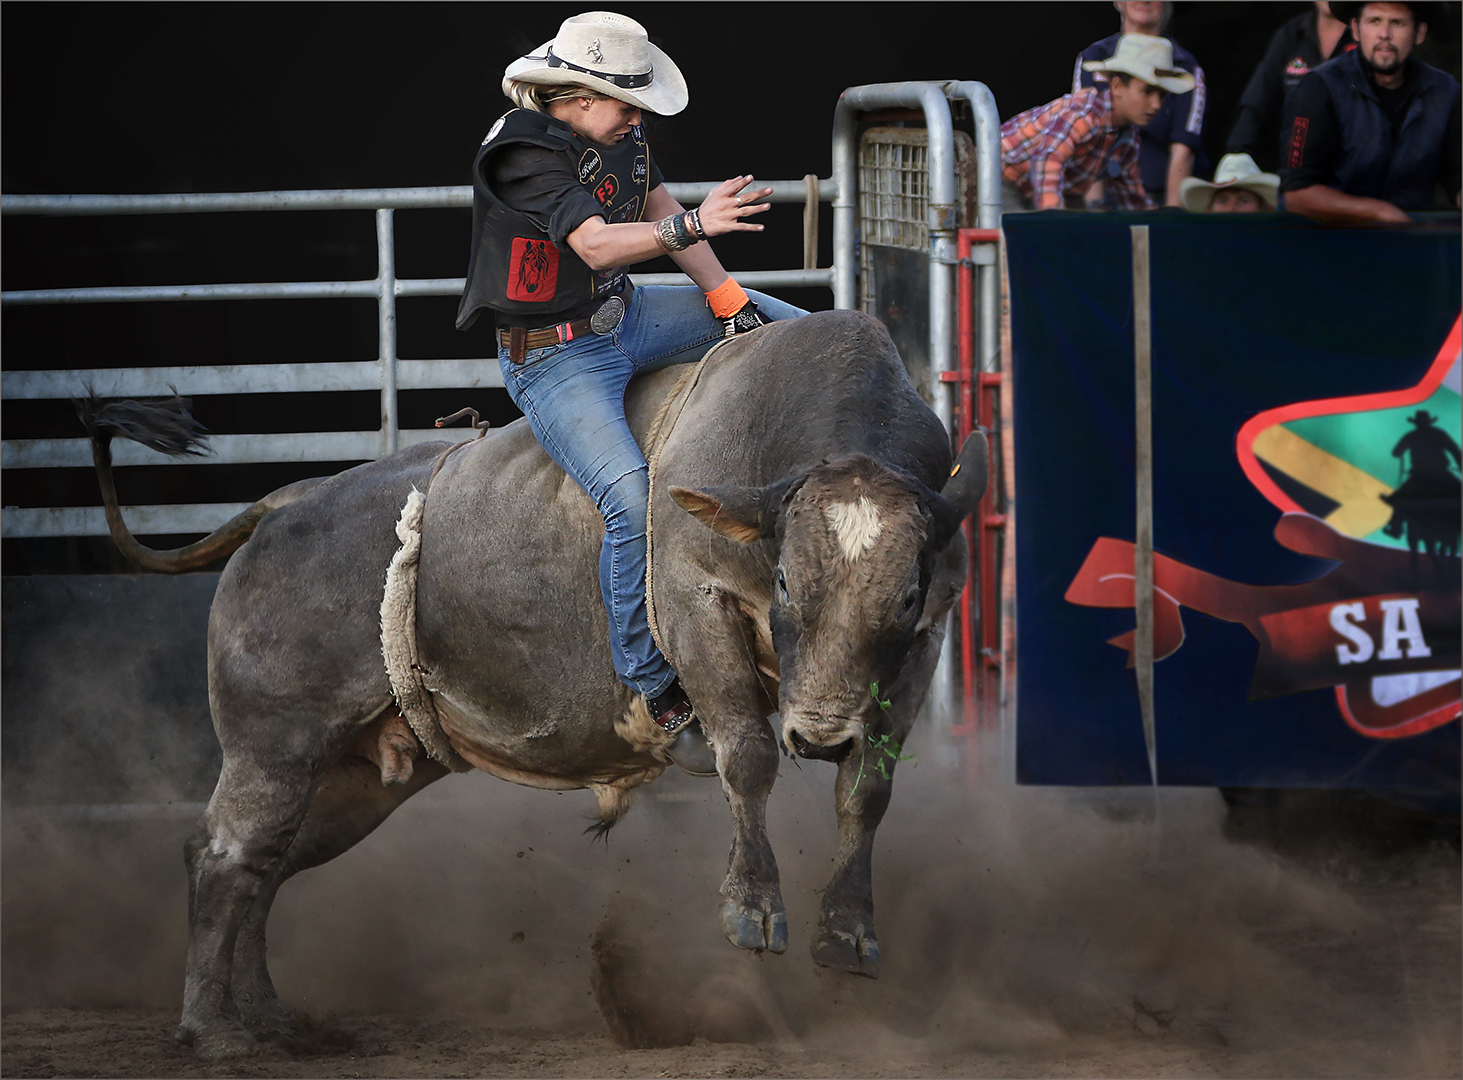 Cowgirl Bull Riding-Cliffy Els